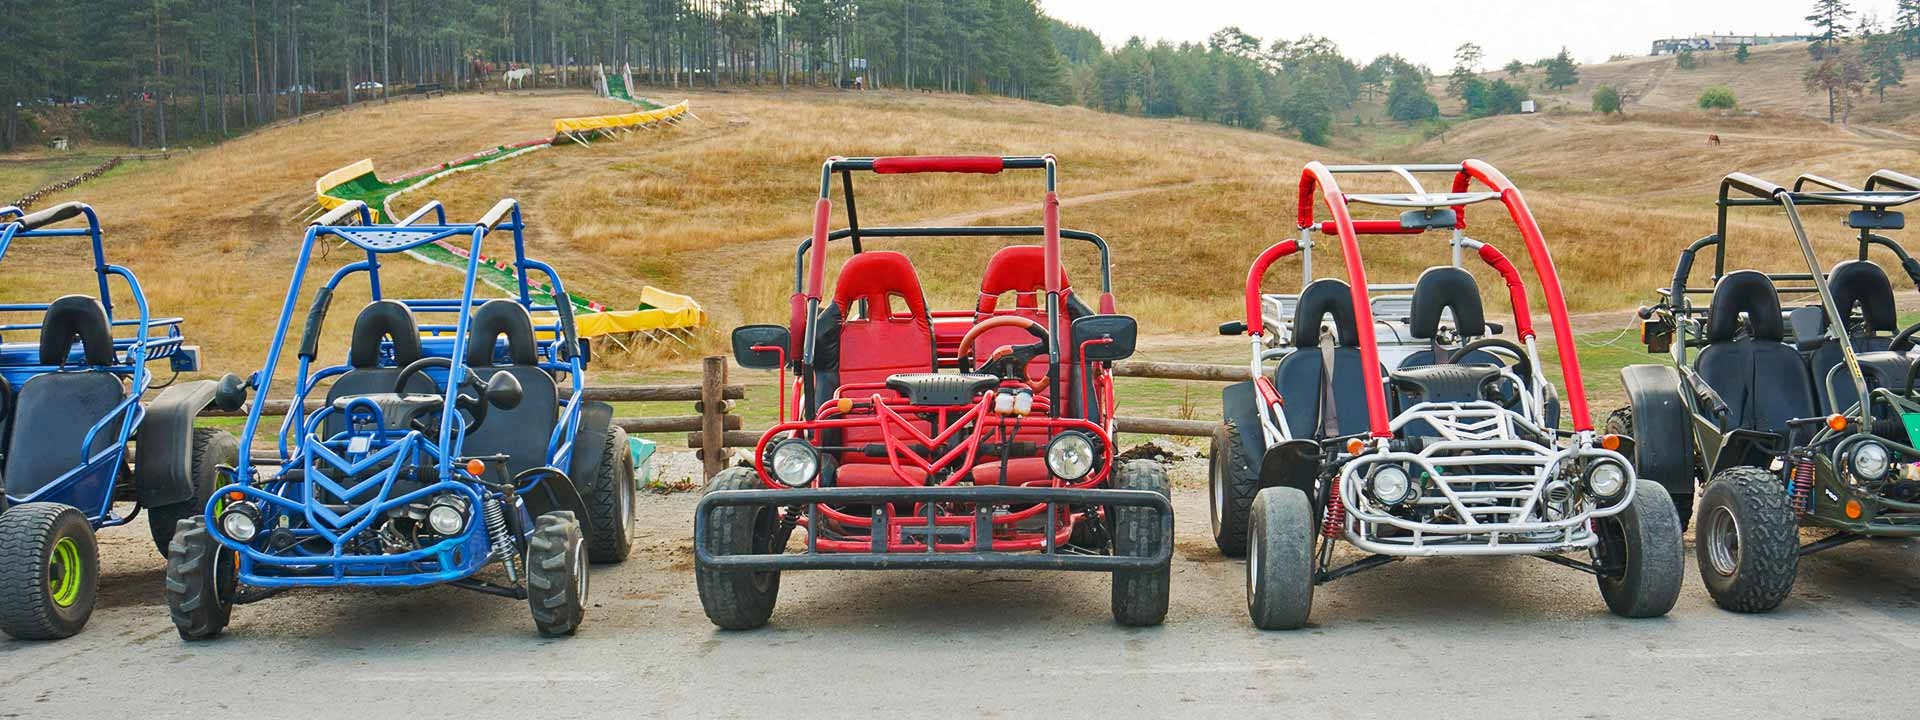 Off-Road Go Karts